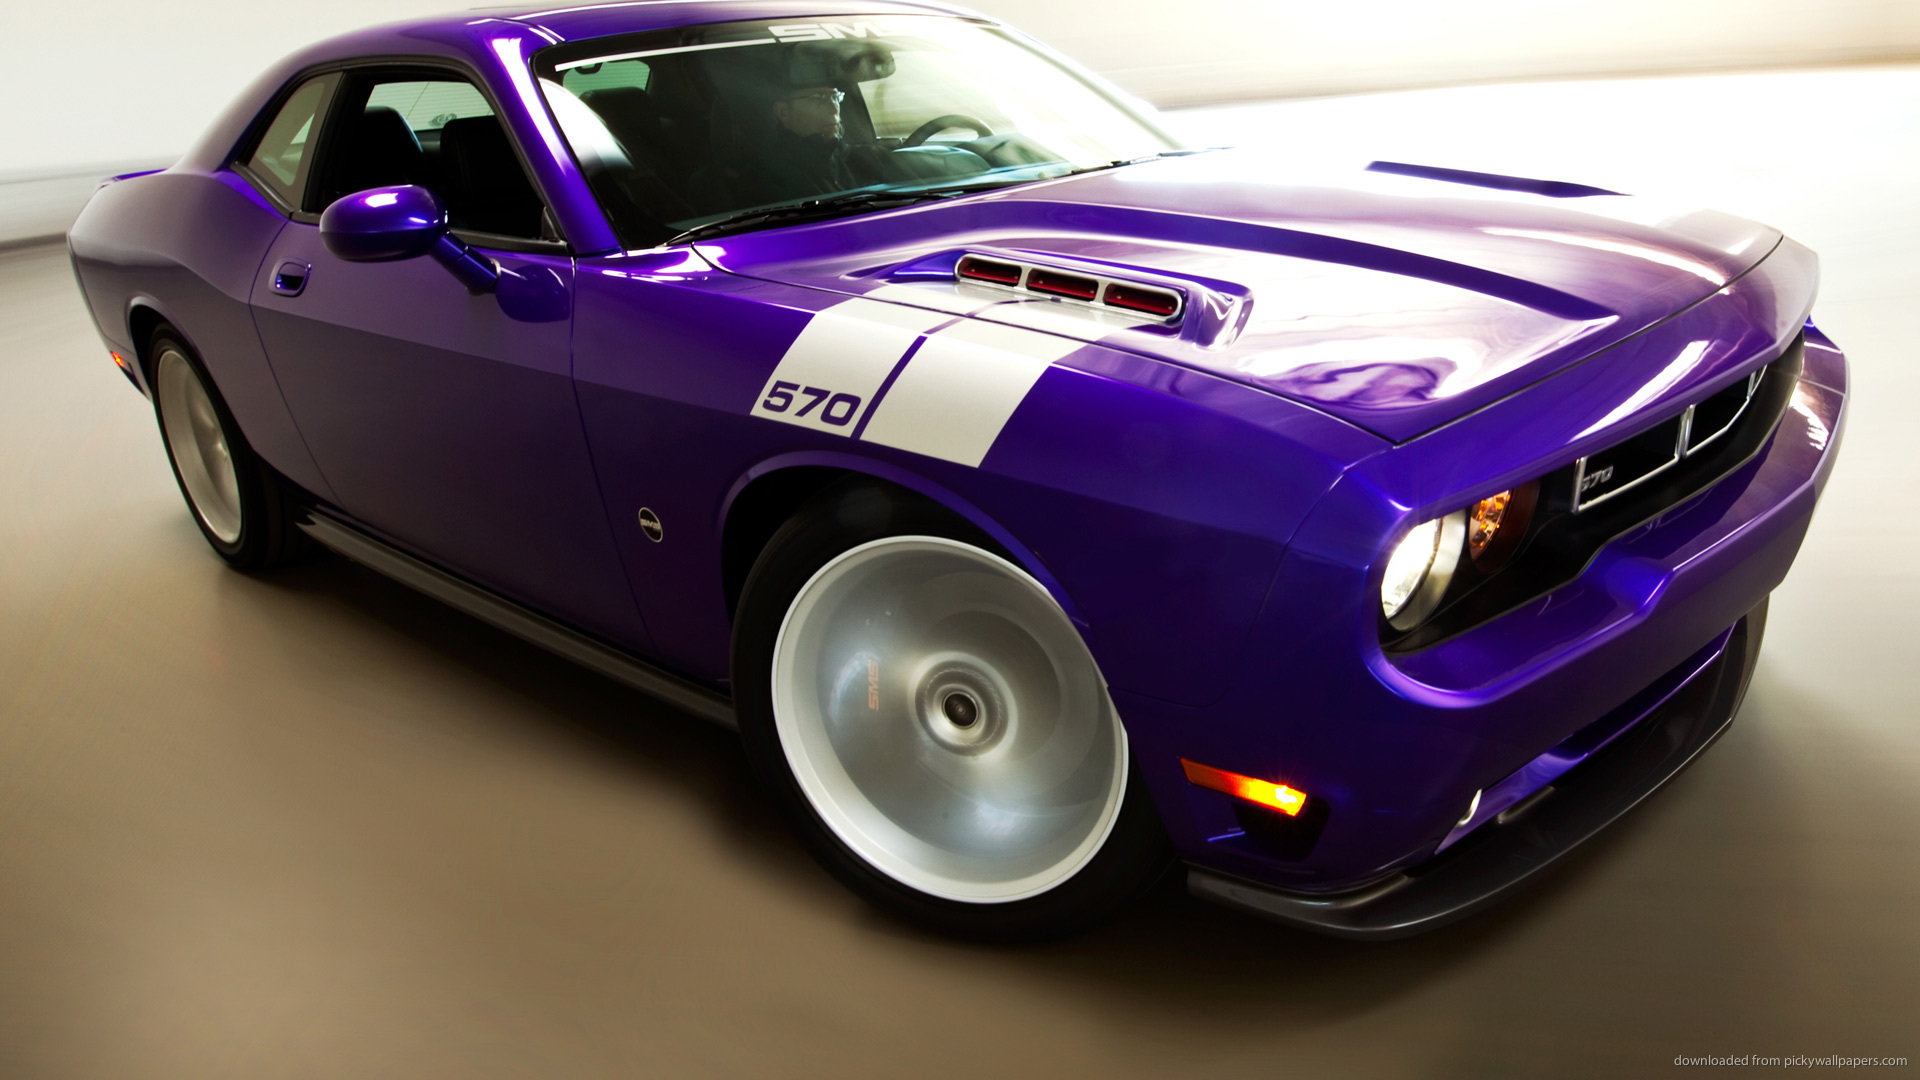 Dodge Challenger Picture For iPhone Blackberry iPad Violet Dodge 1920x1080